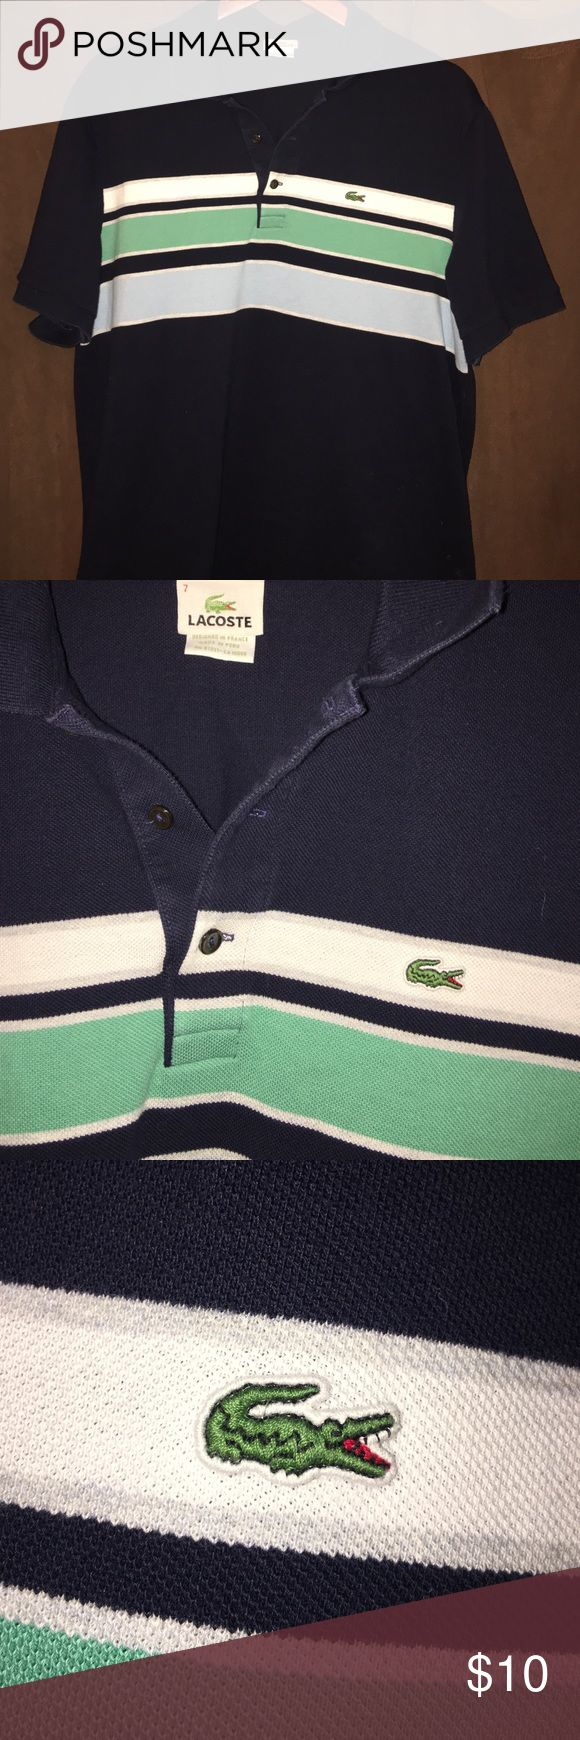 Lacoste men's Polo shirt Gently worn men's Lacoste polo shirt in size 7 (men's XL) Lacoste Shirts Polos